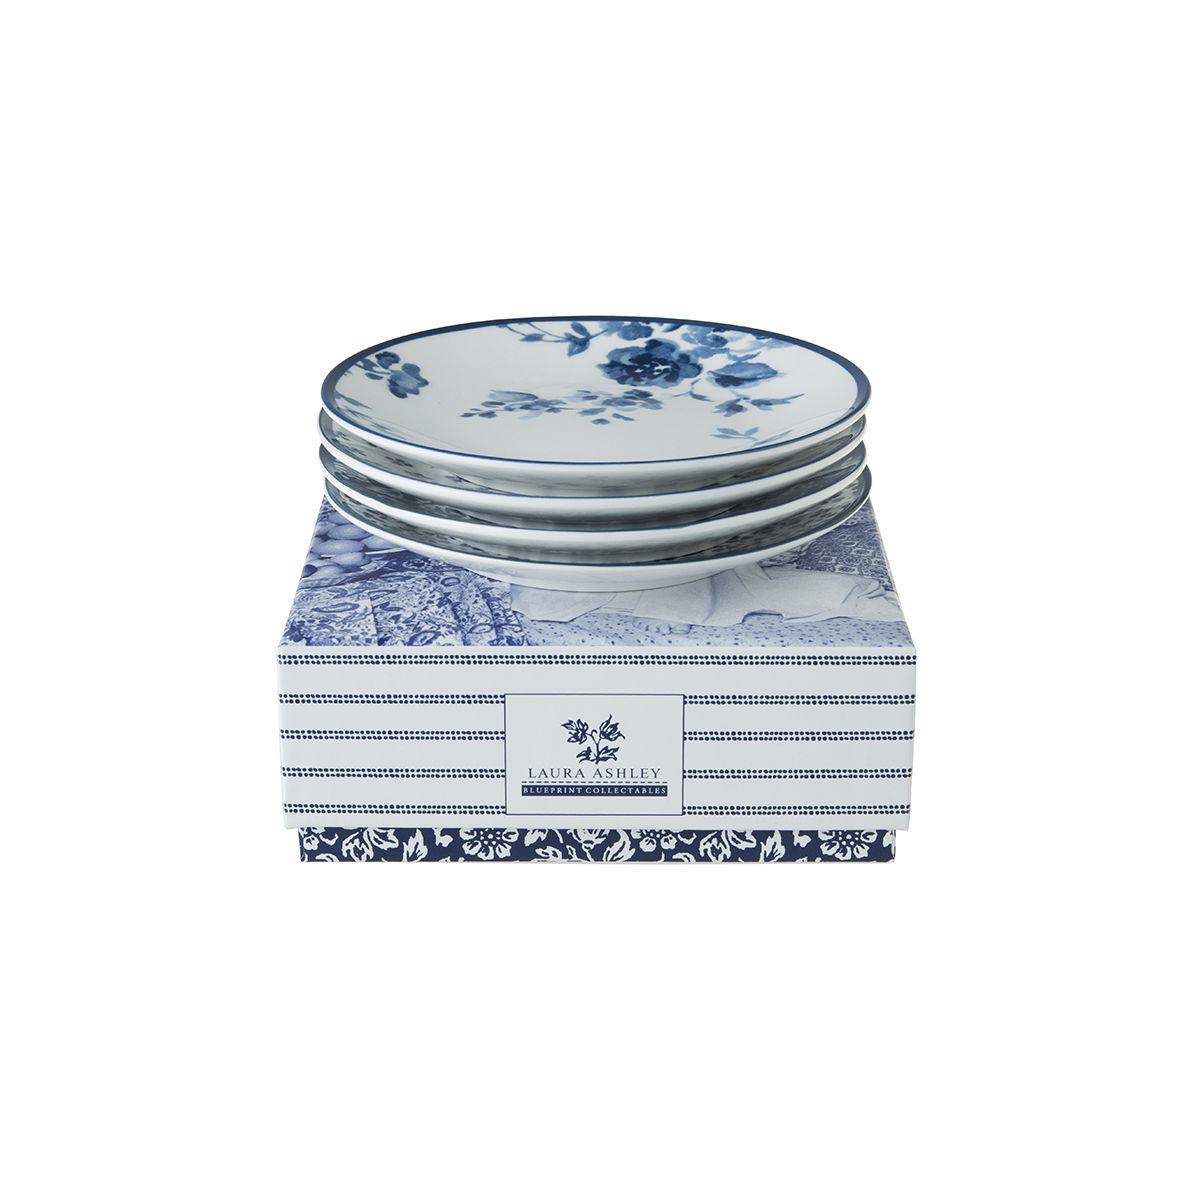 Laura Ashley Set Four Boxed Petit Four Plates - product images  of